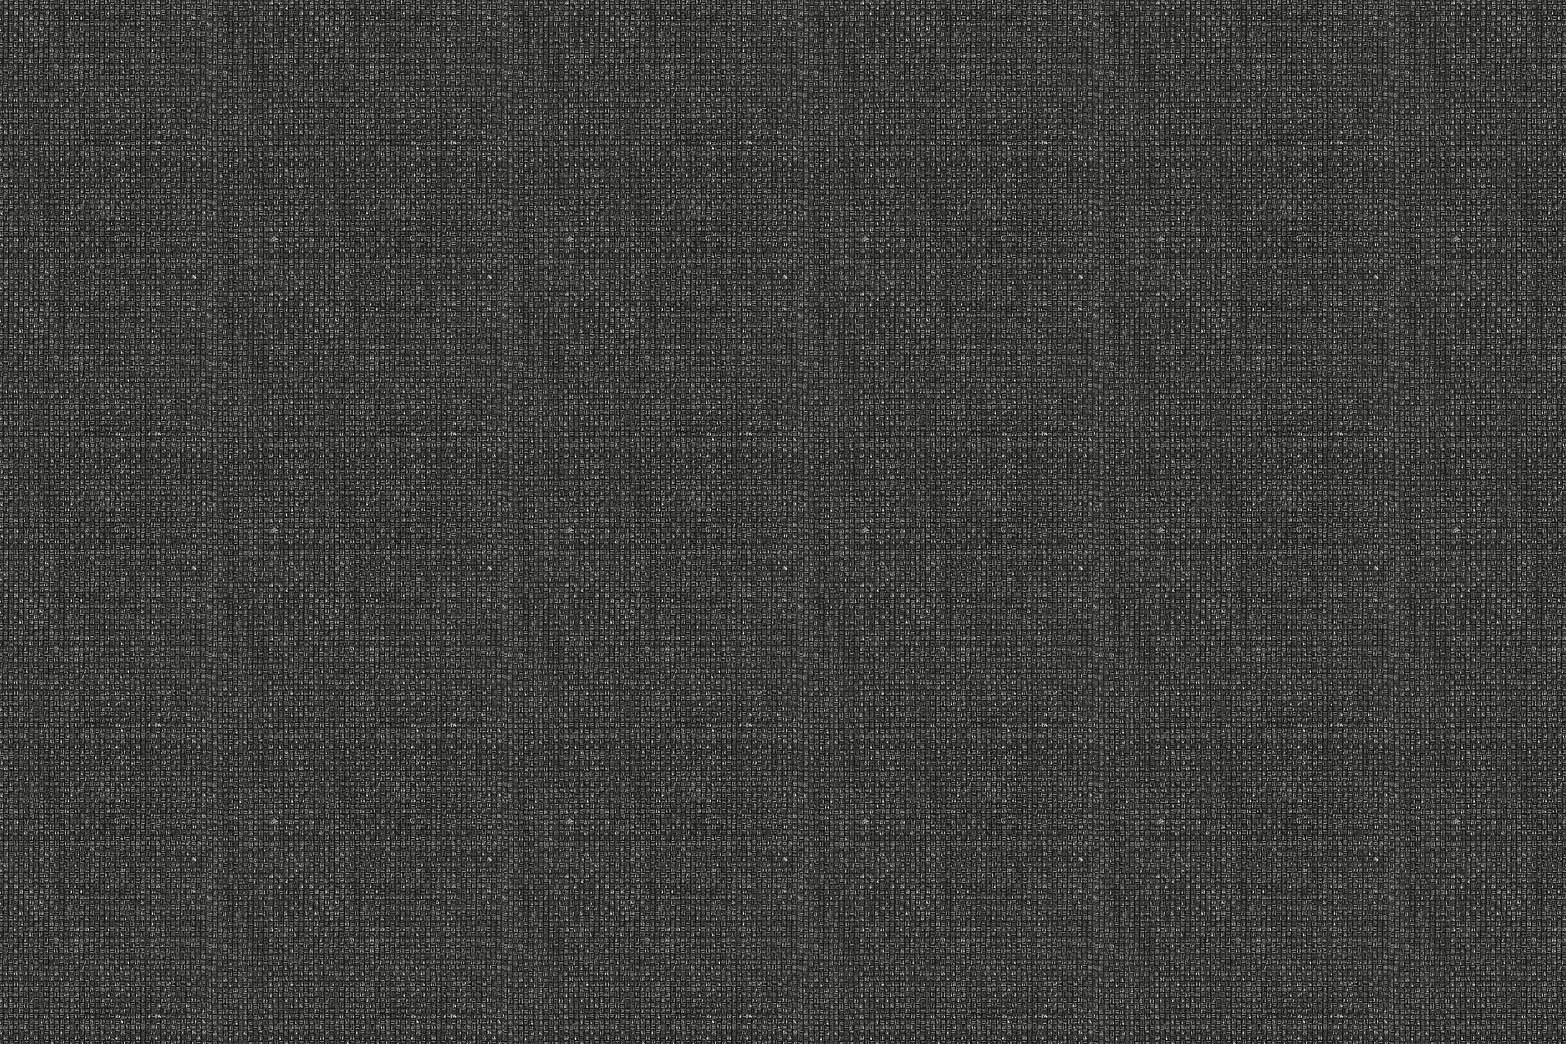 Home Decor 8\u0022x8\u0022 Fabric Swatch-IMAN Glitterati Noir